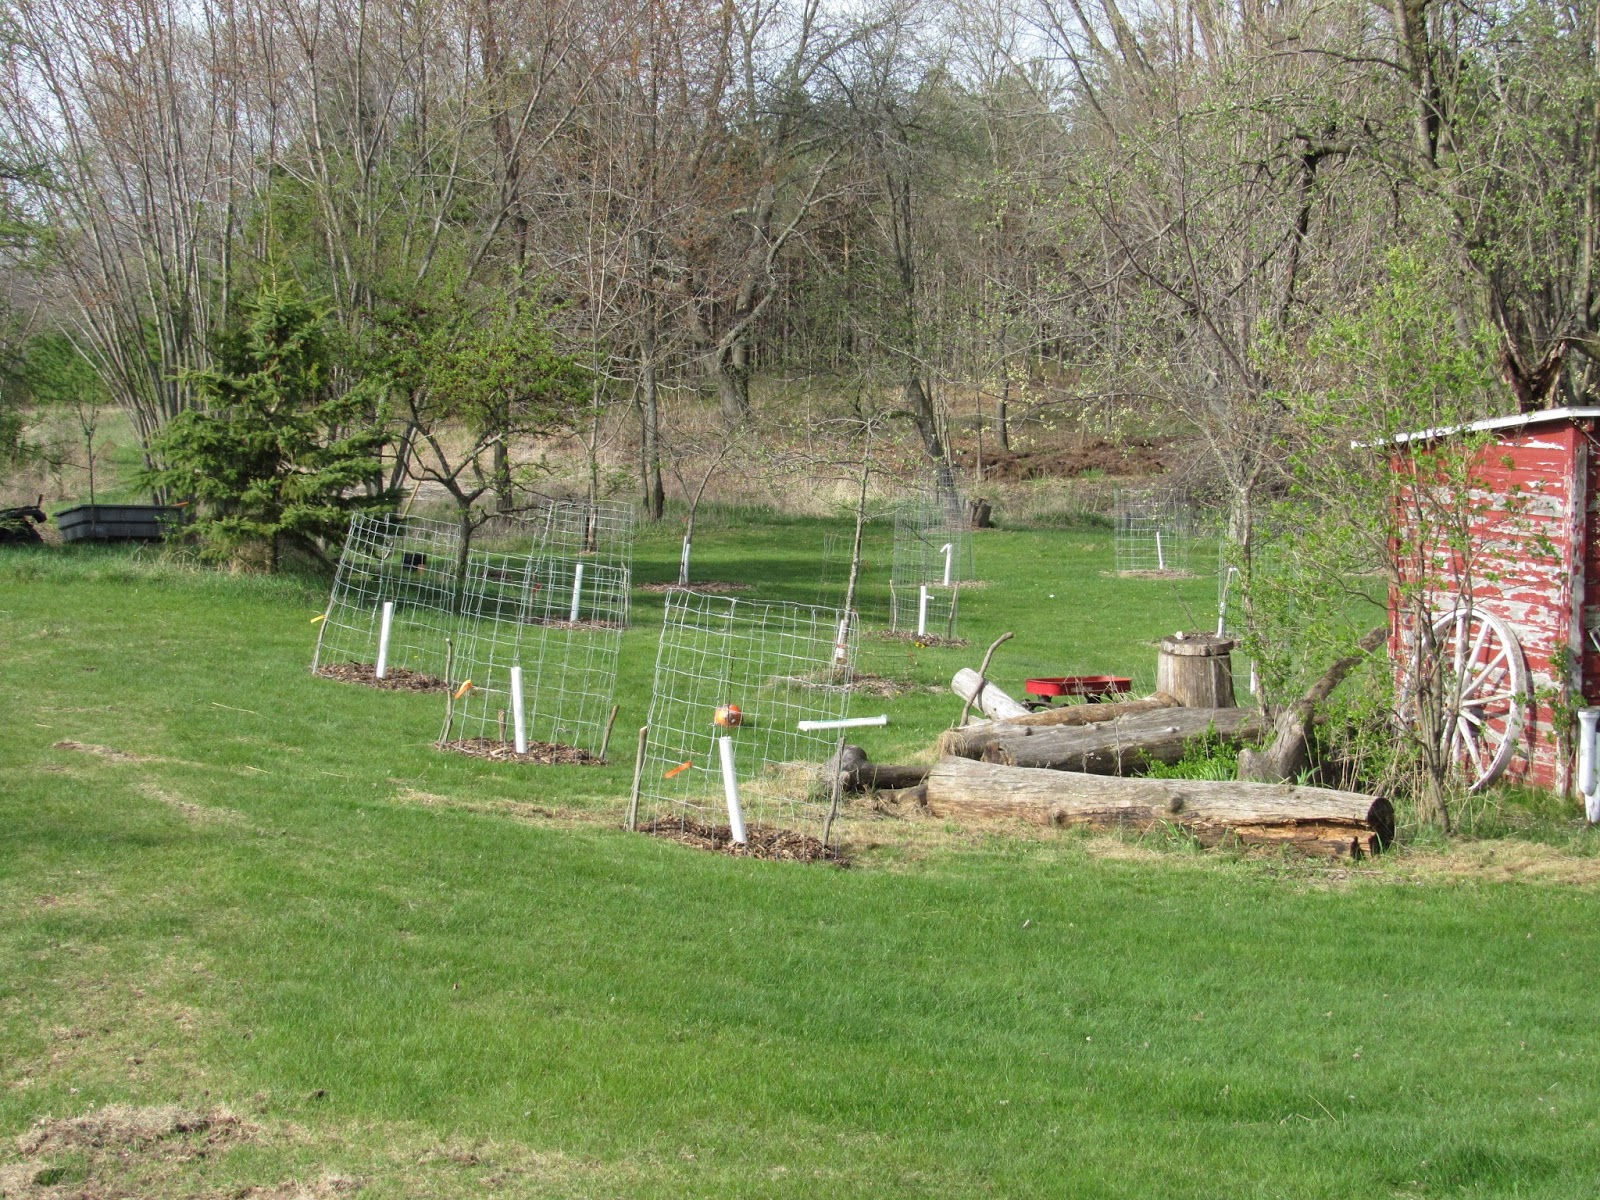 planting bare root apple trees improved ecosystems